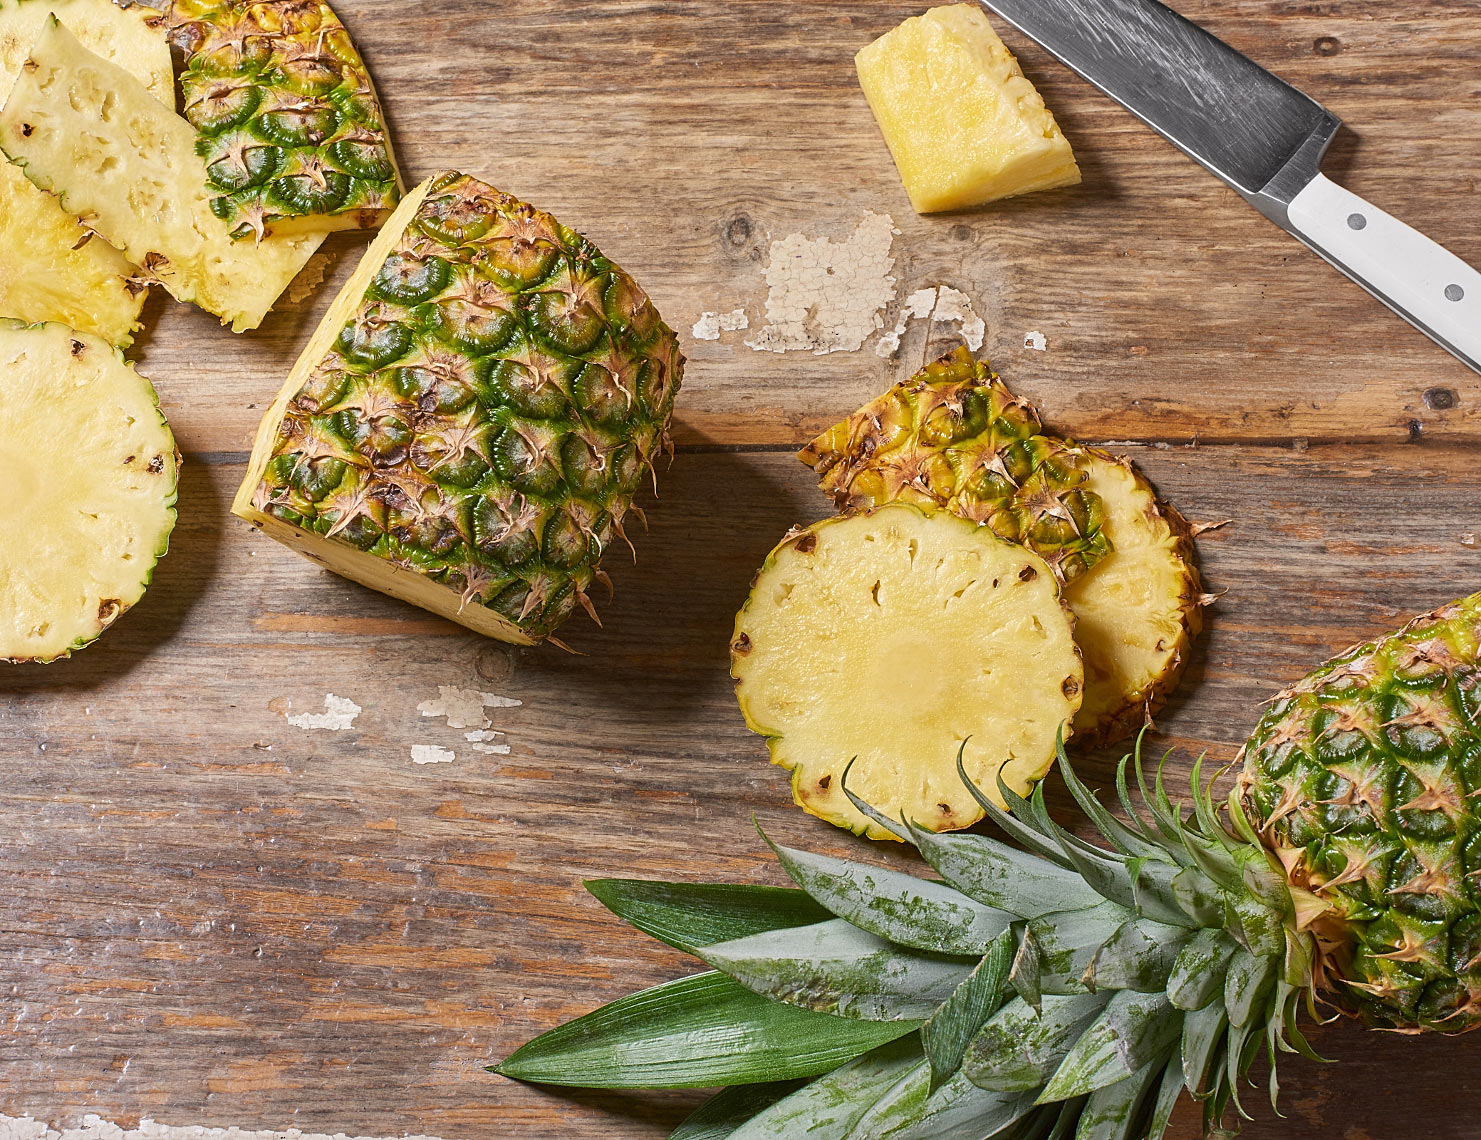 Pineapple_overhead_6009_notext_b